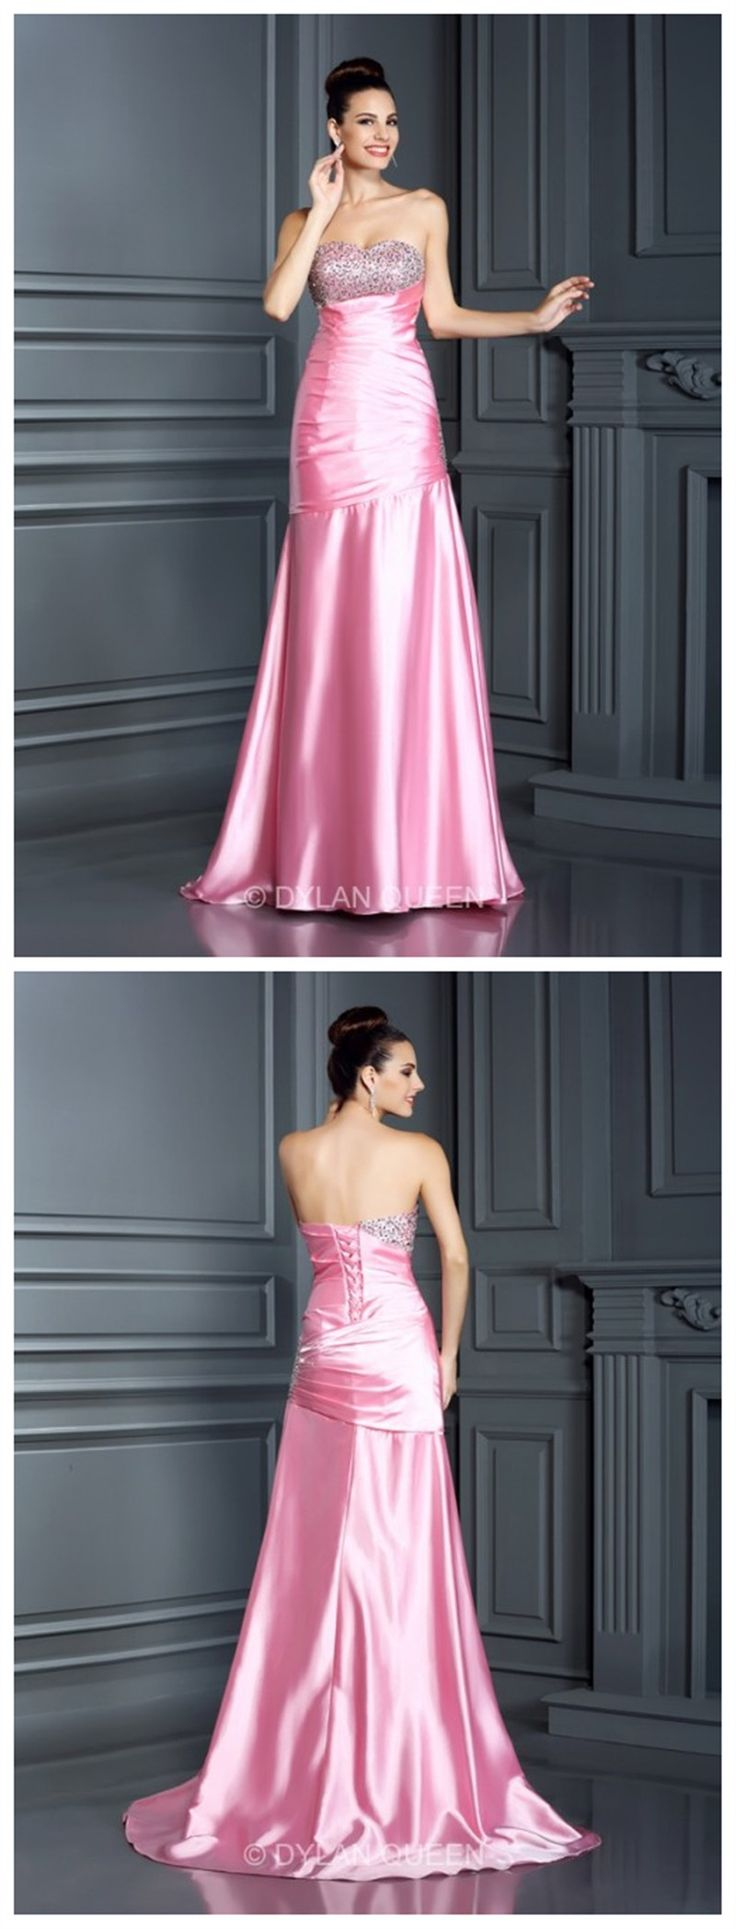 49 best Evaluation Question 4 images on Pinterest   Cheap prom ...